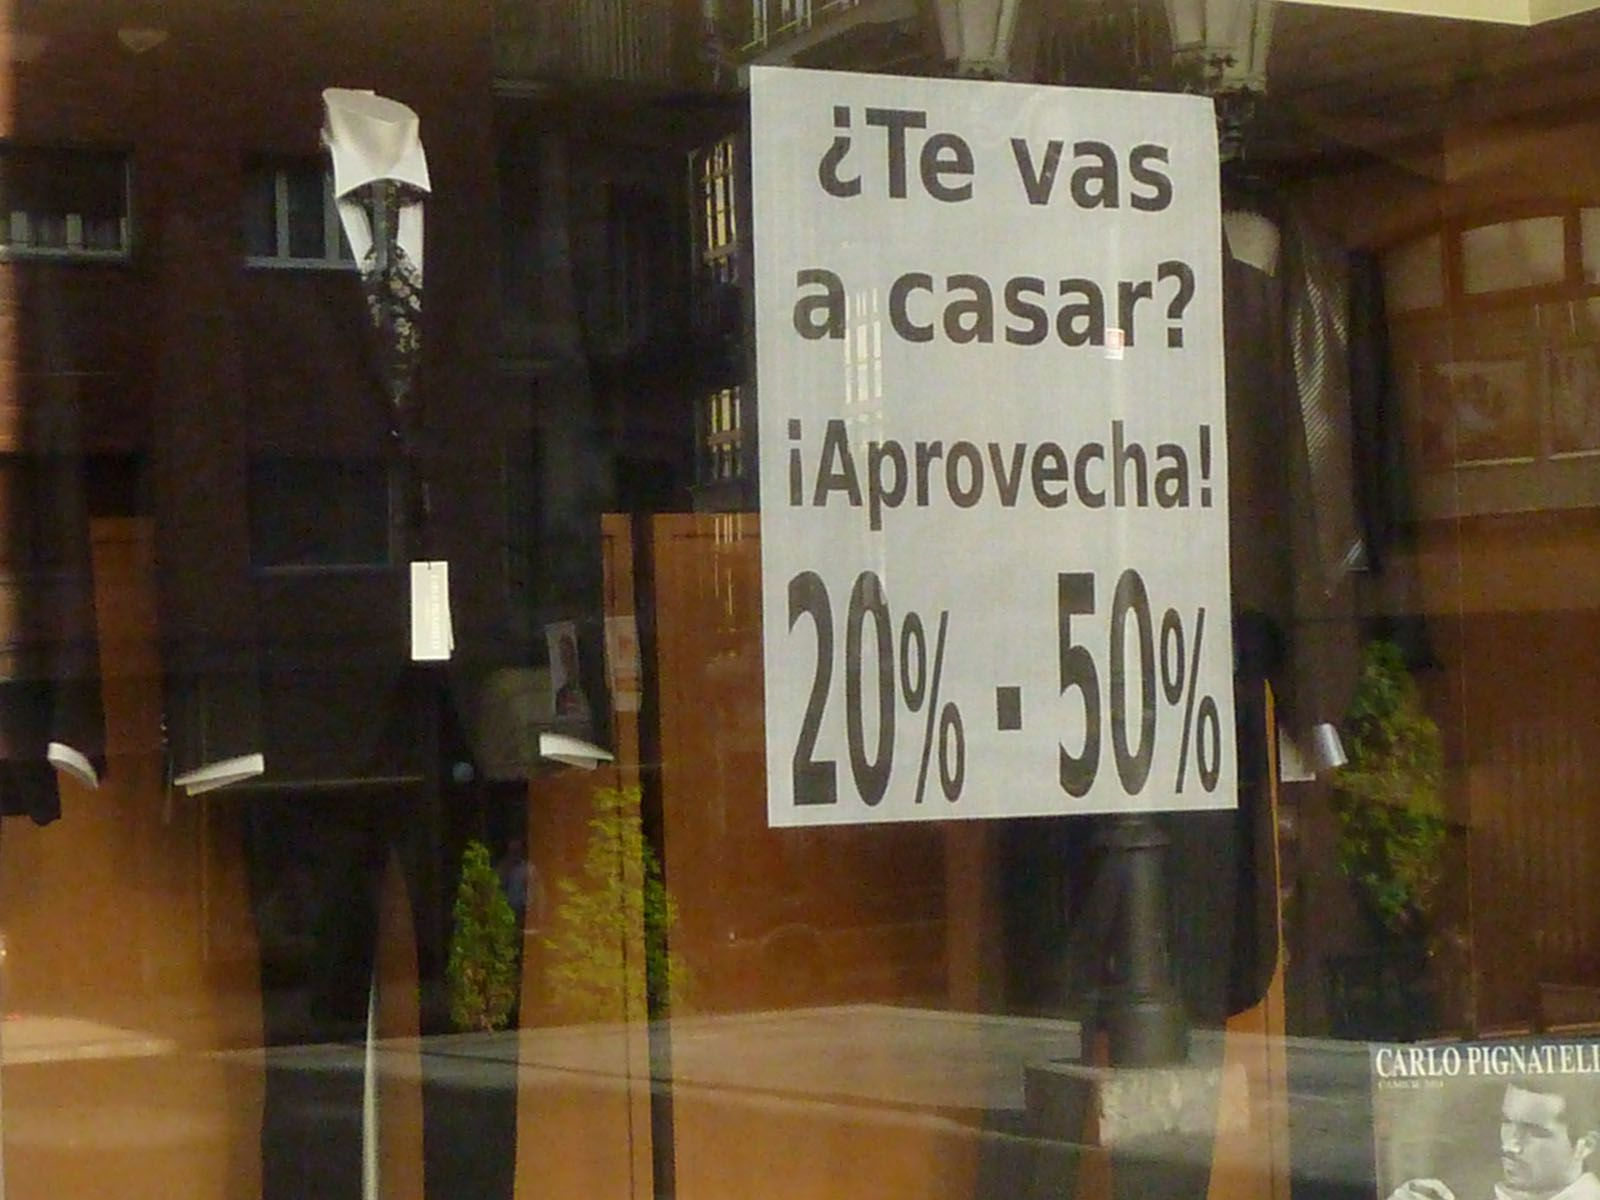 Upside-Down Question and Exclamation Marks in Spanish